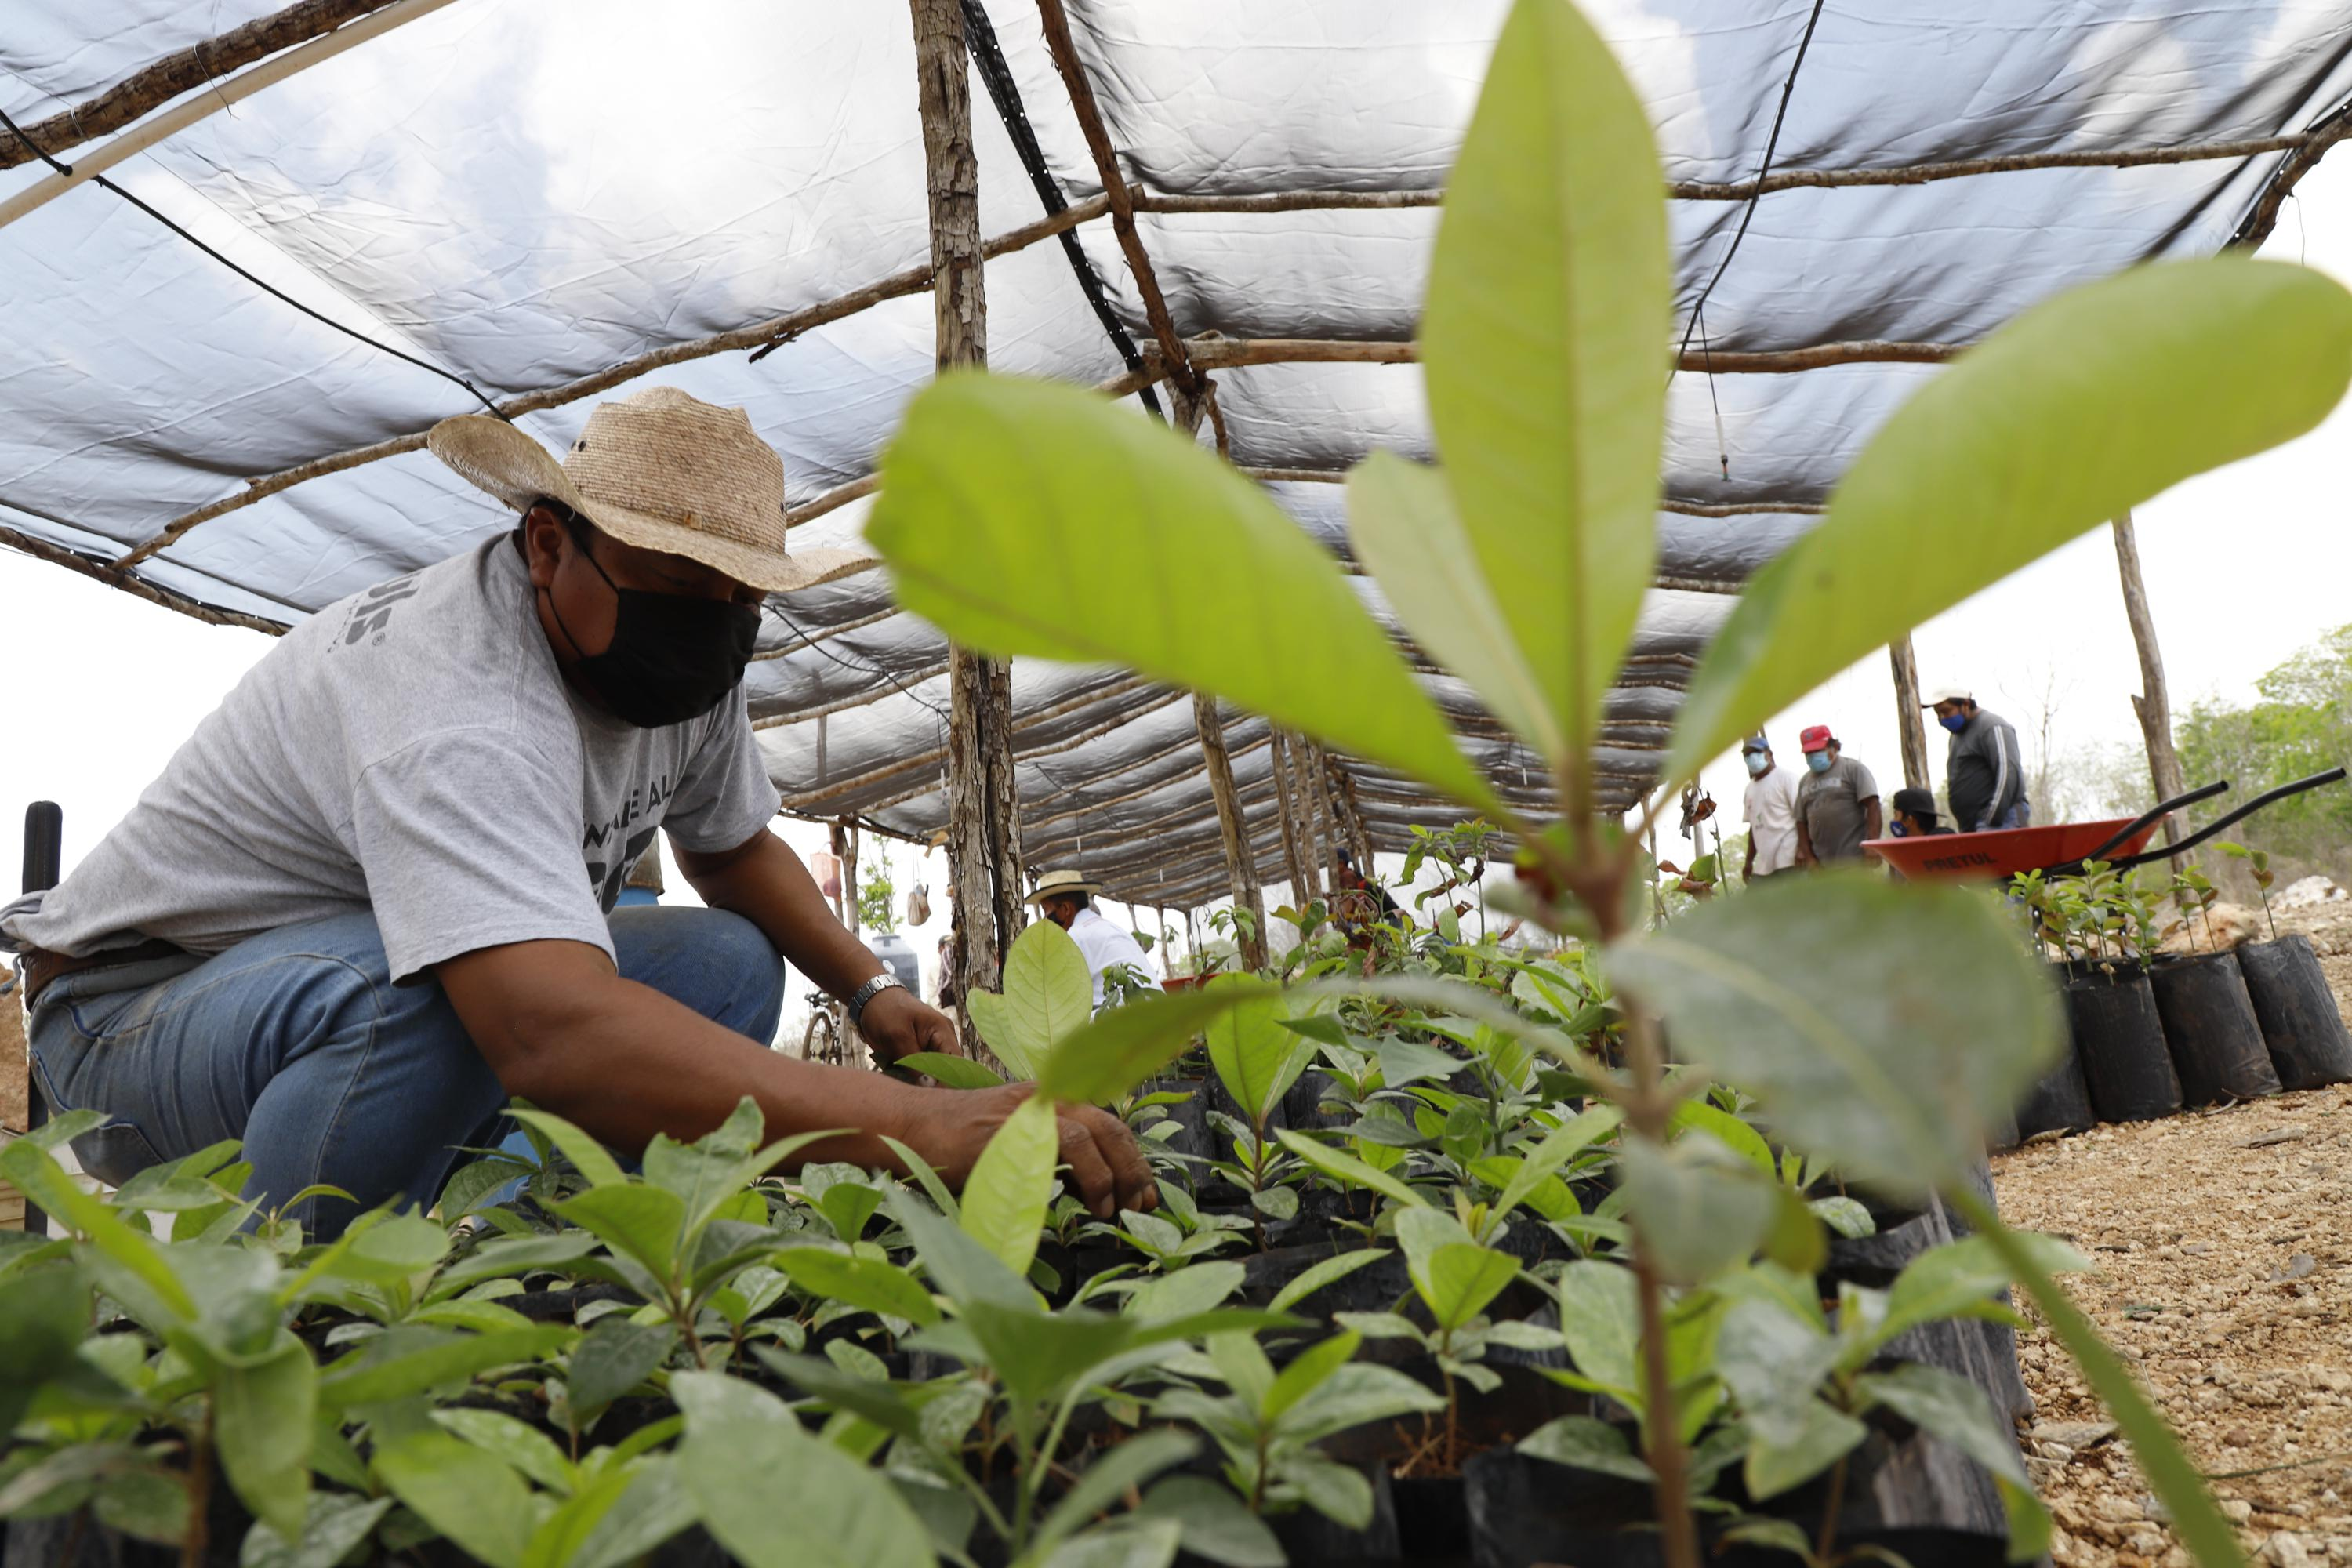 Mexican president pushes controversial reforestation plan